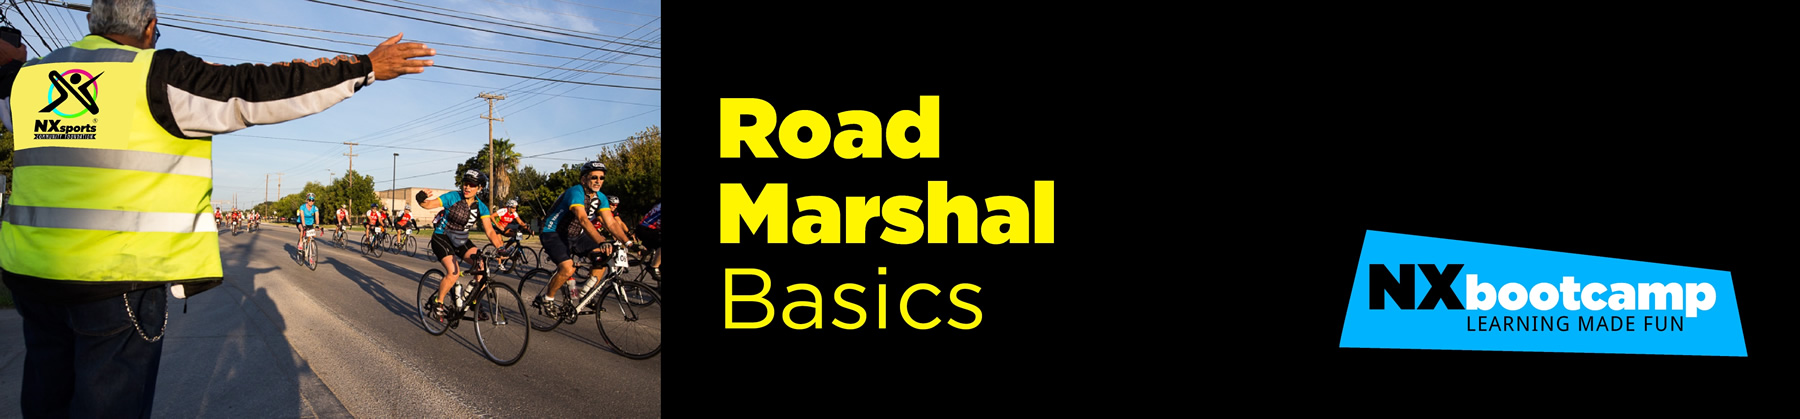 road marshal basics course